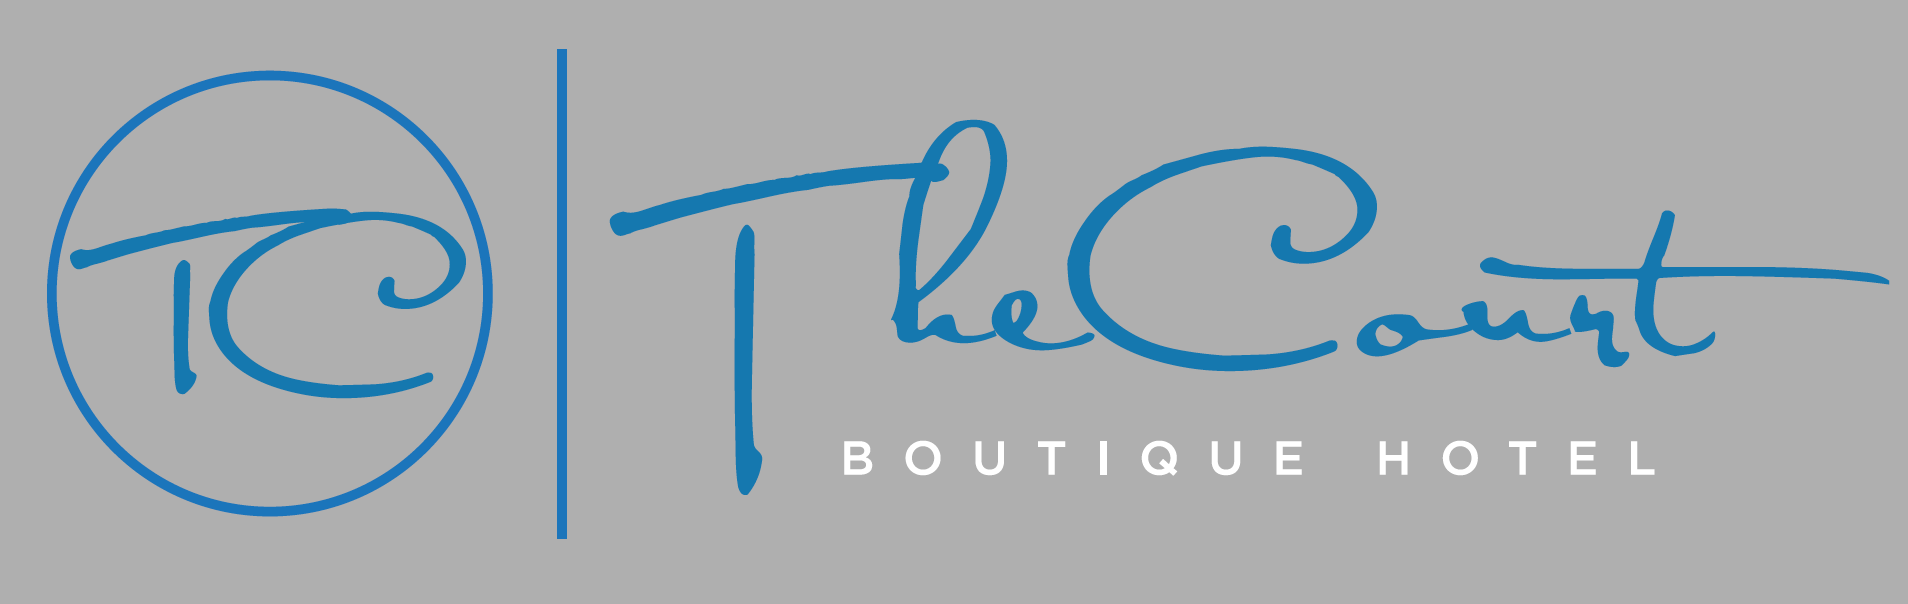 The Court Boutique Hotel